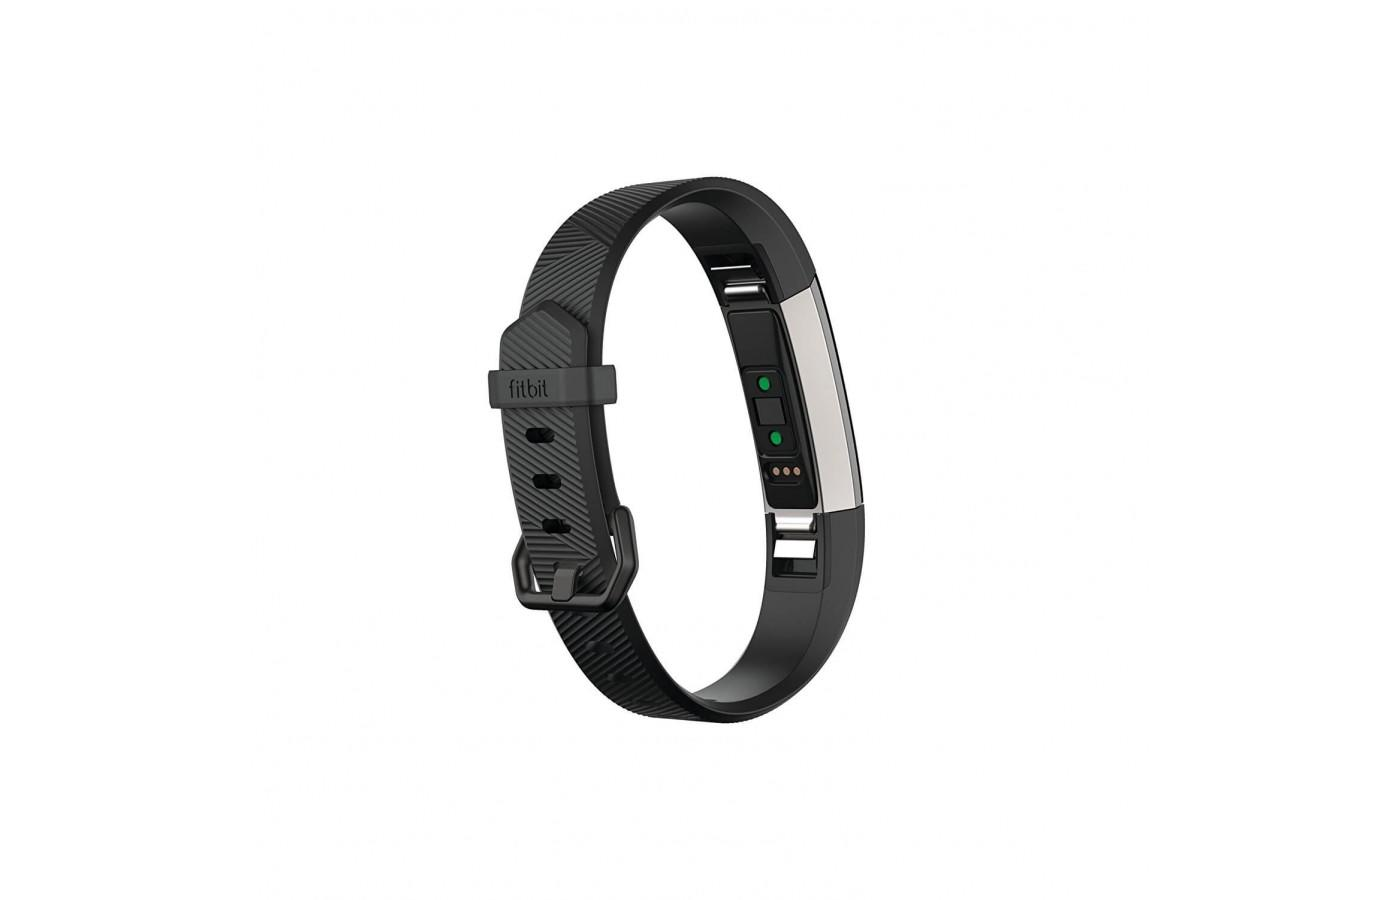 This version of the Fitbit Alta has a heart rate monitor